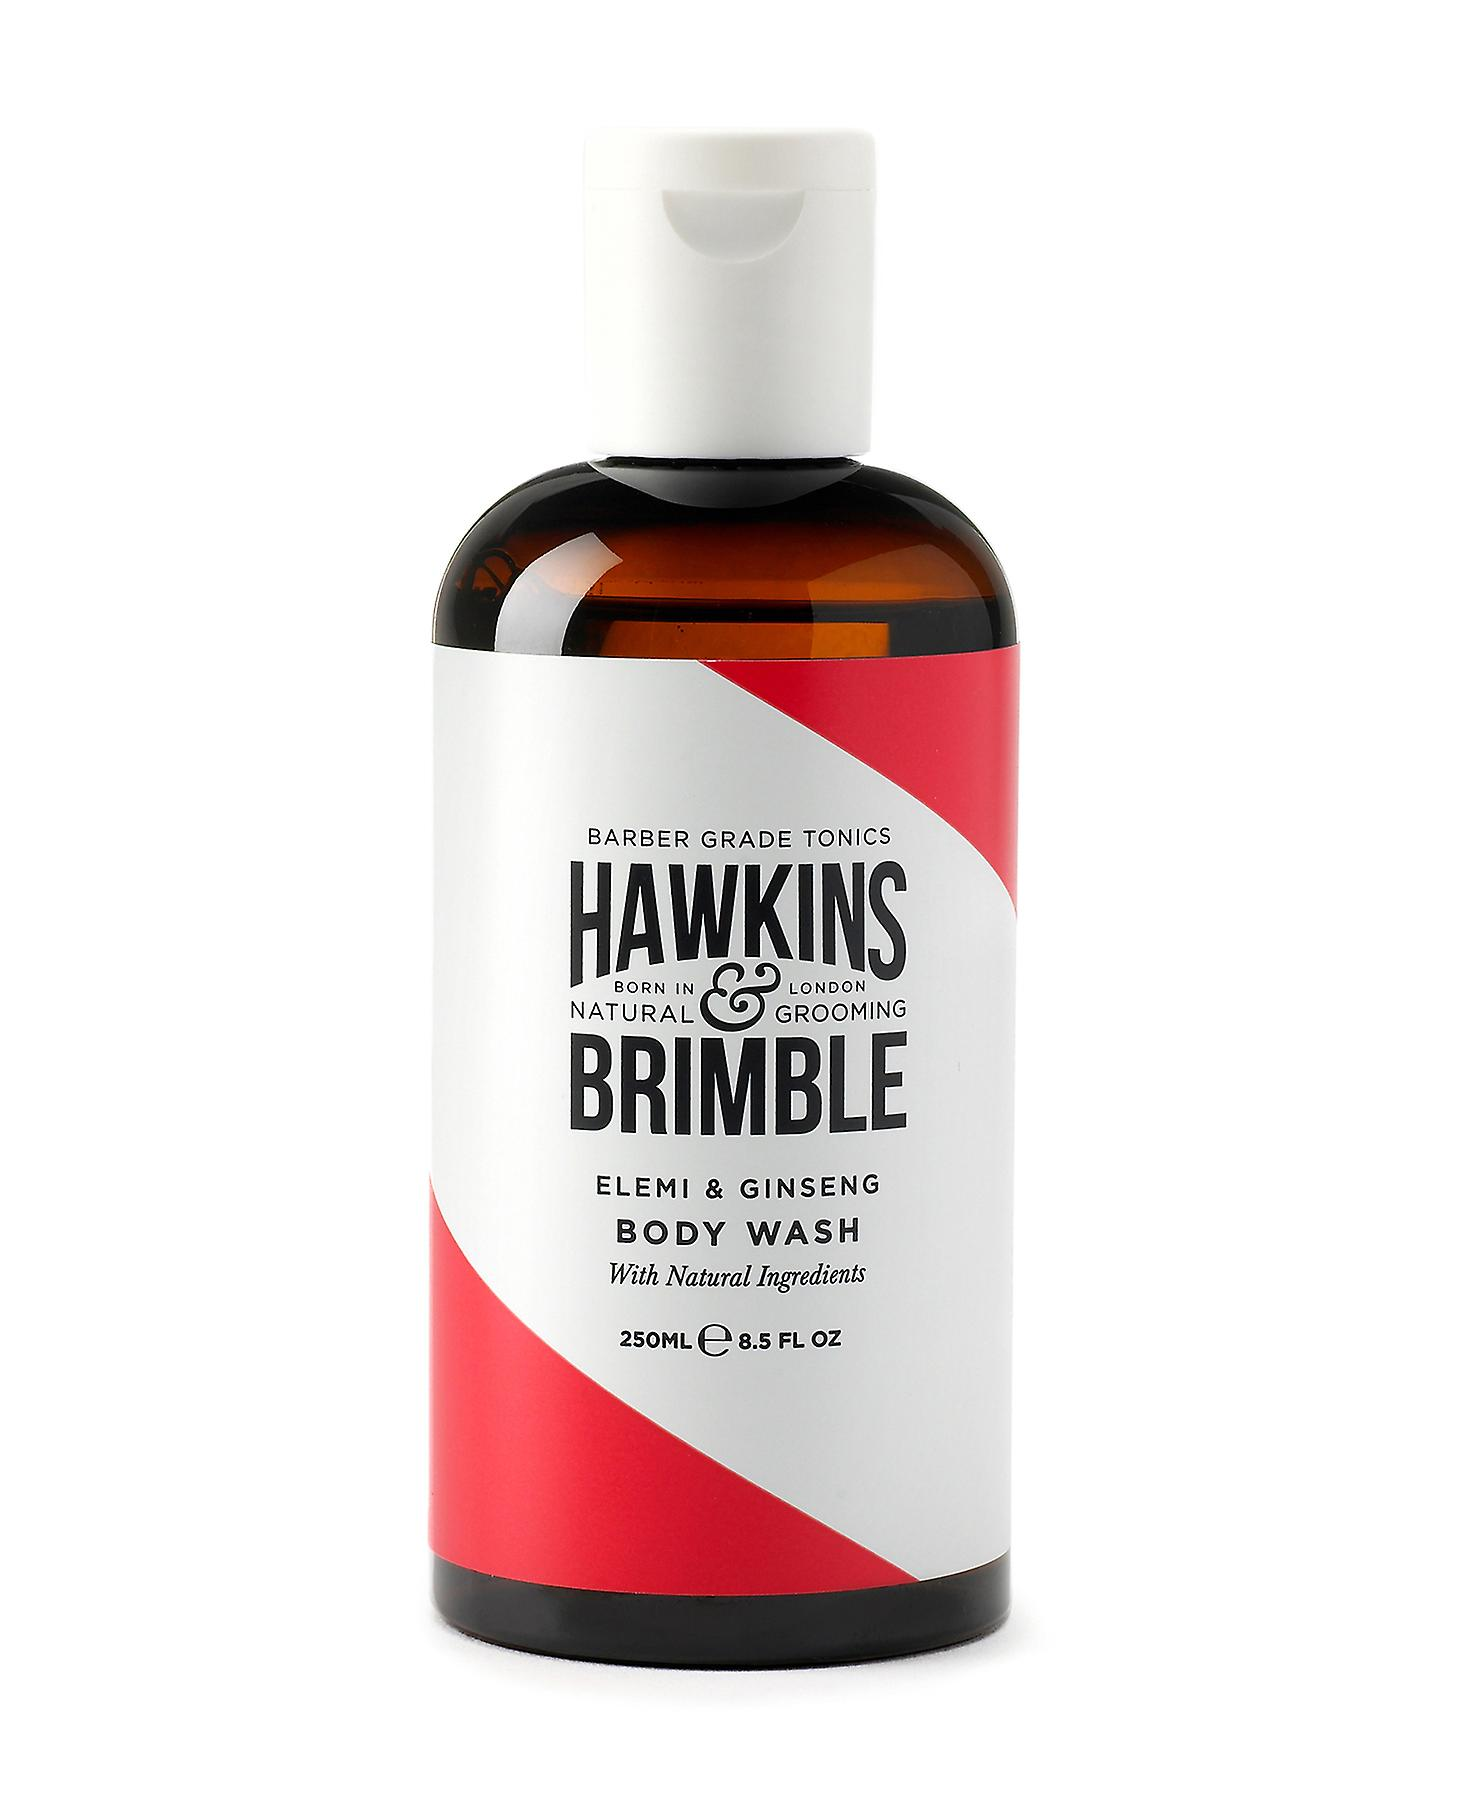 Hawkins & Brimble Body Wash (250ml)